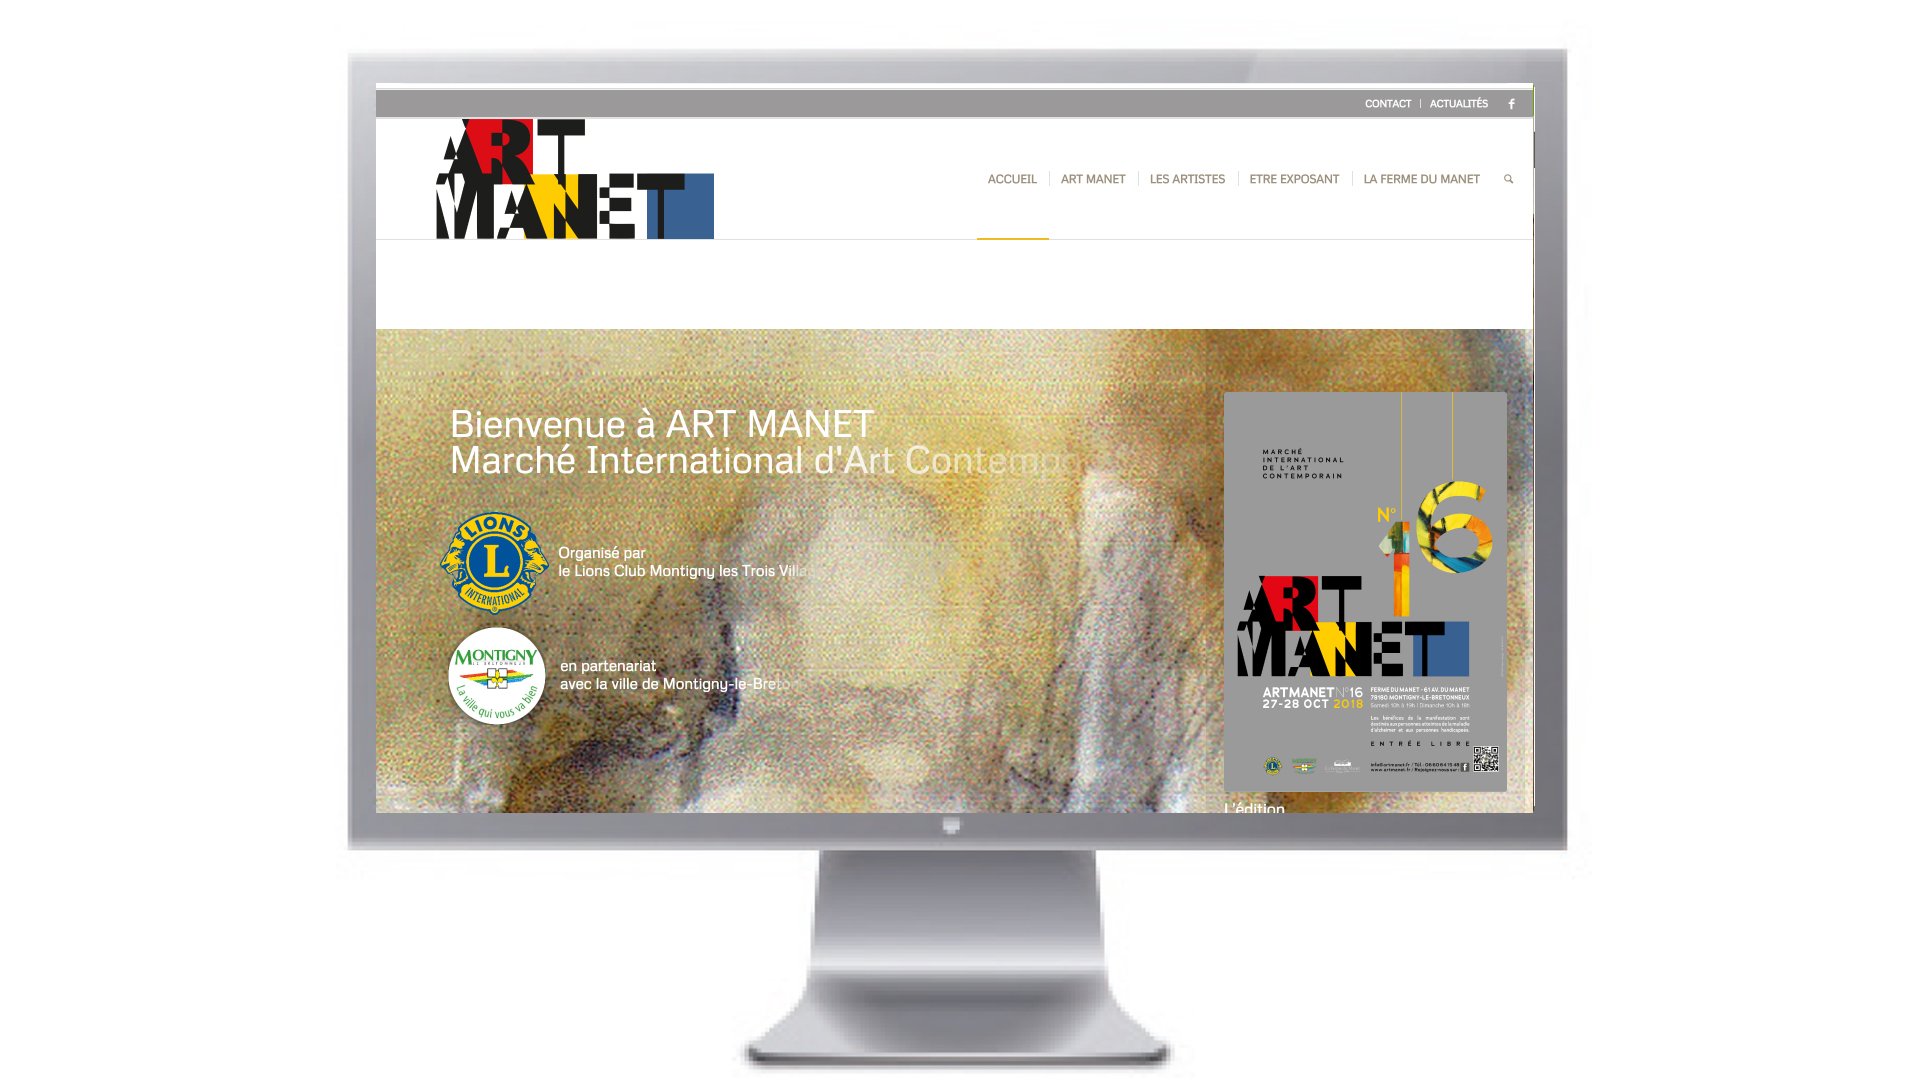 Art Manet Marché d'Art Contemporain